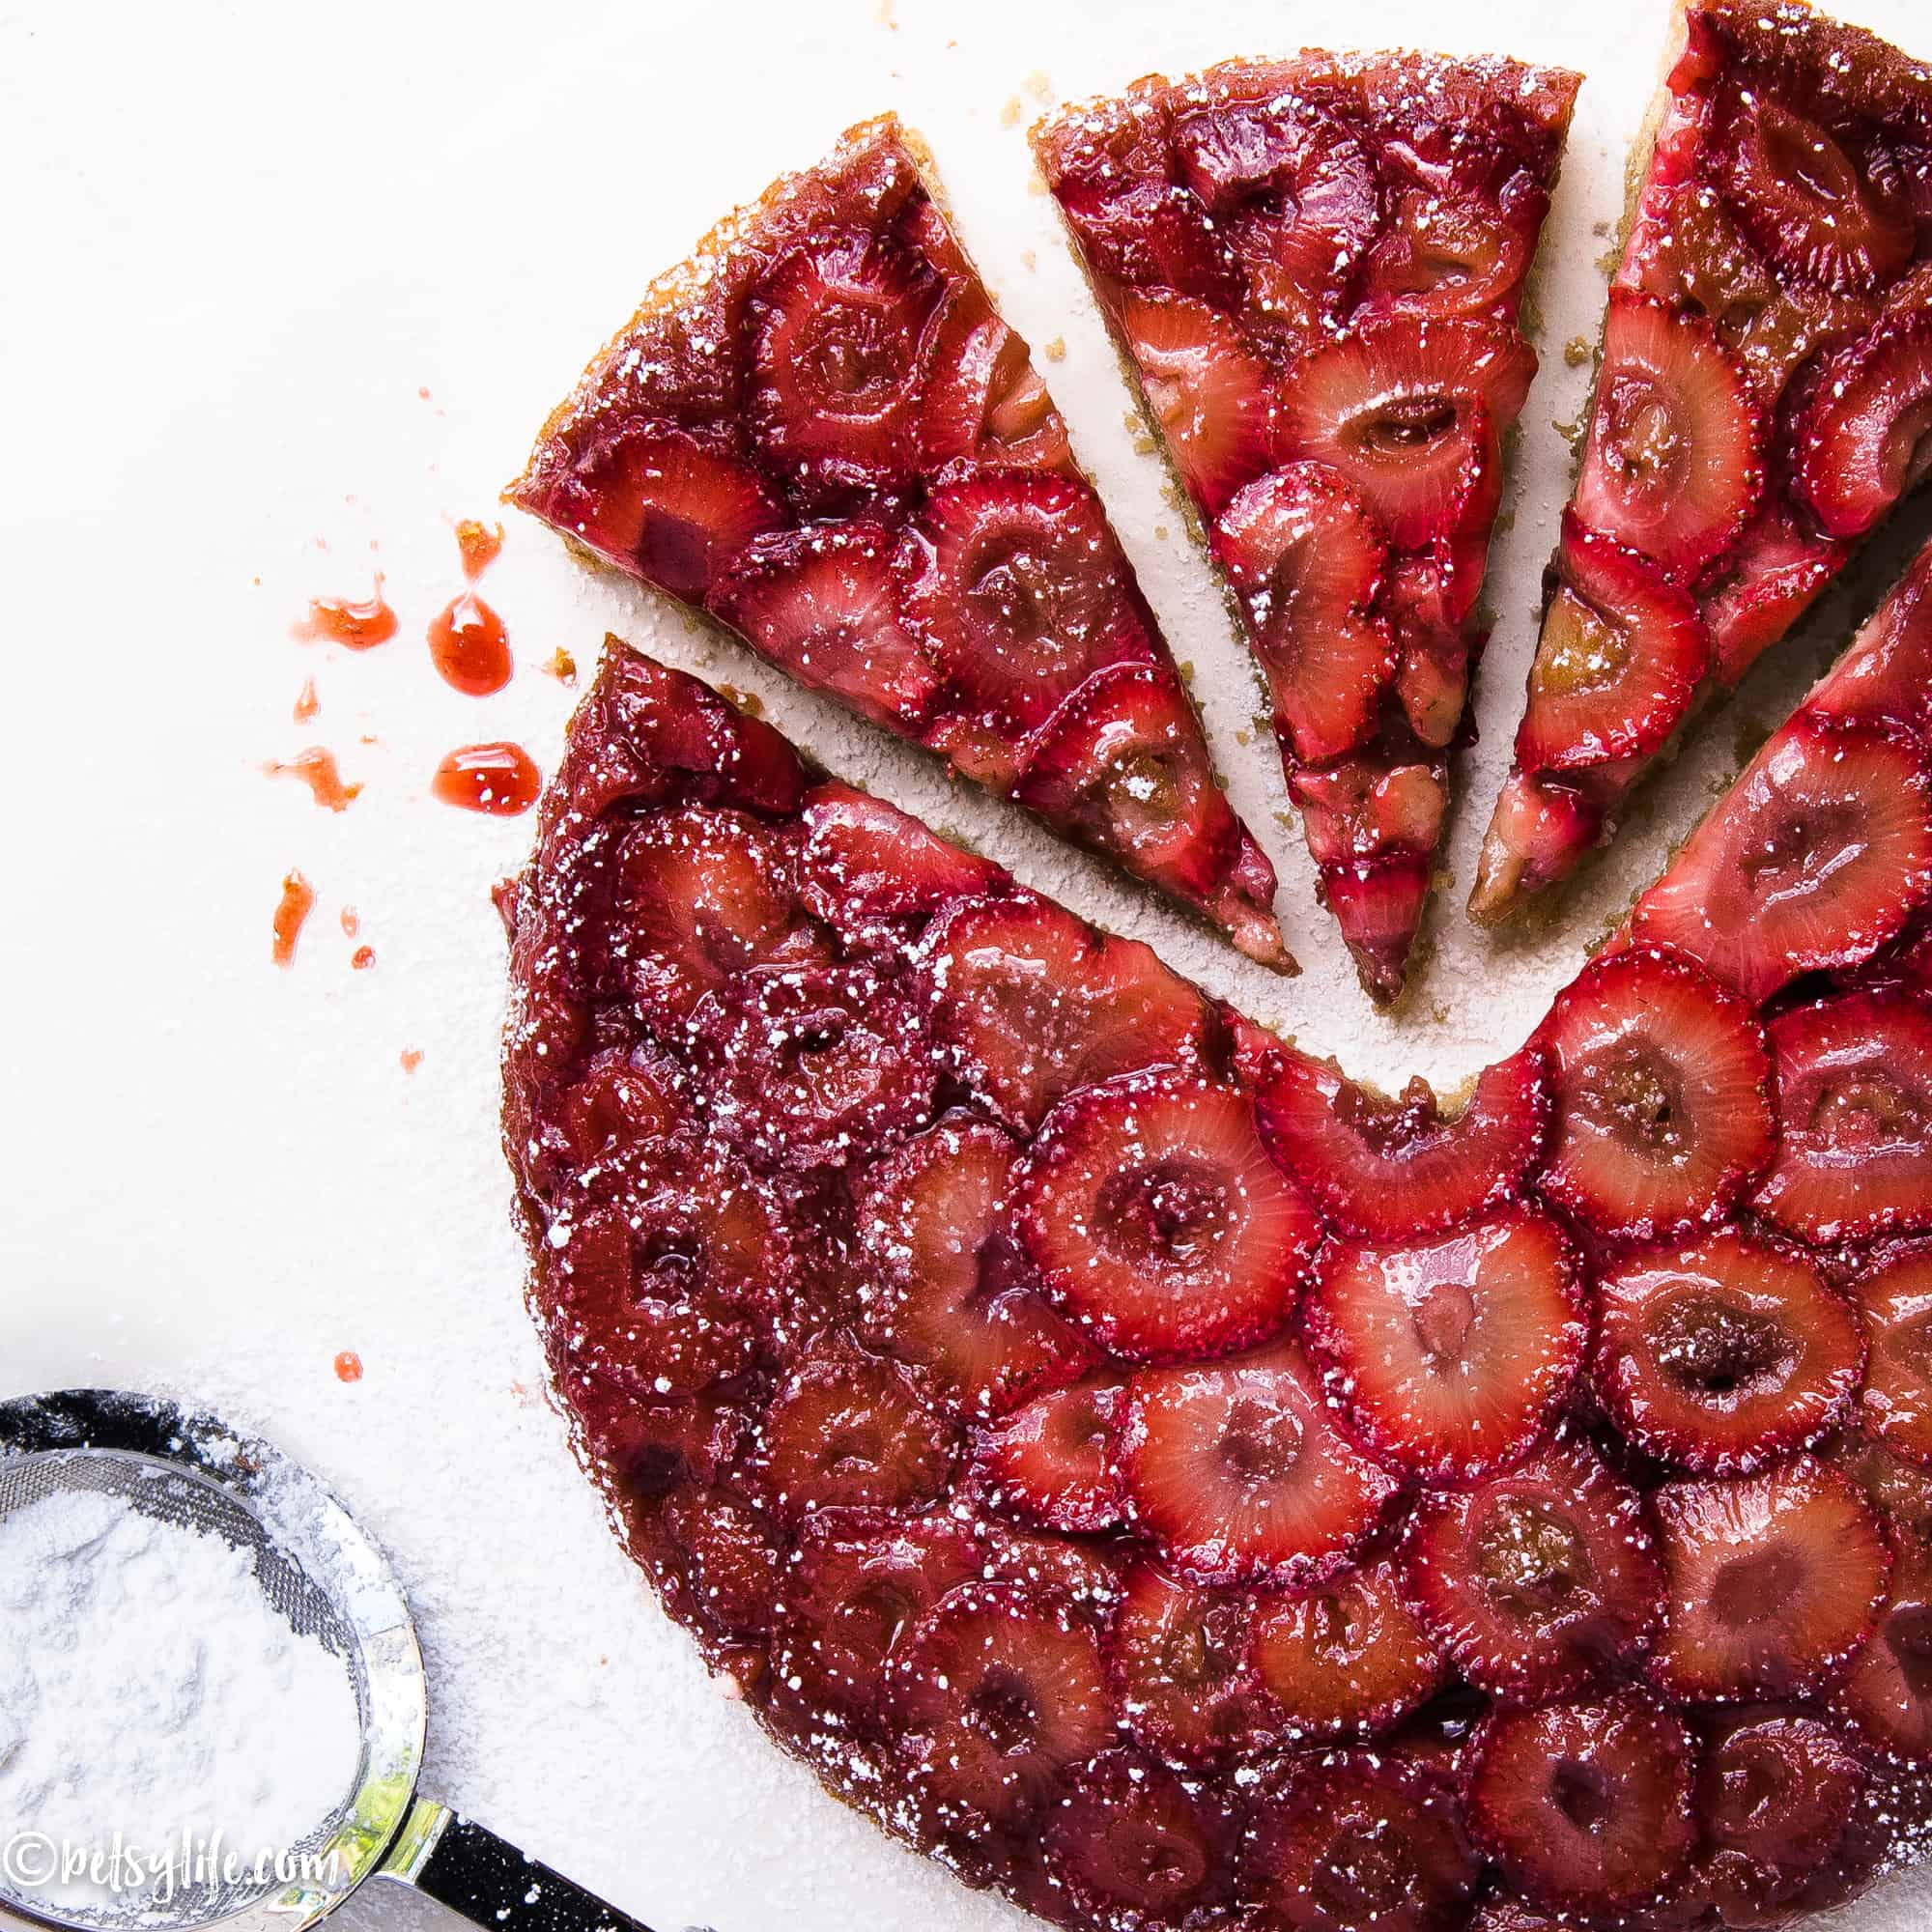 strawberry upside down cake sliced into triangular pieces